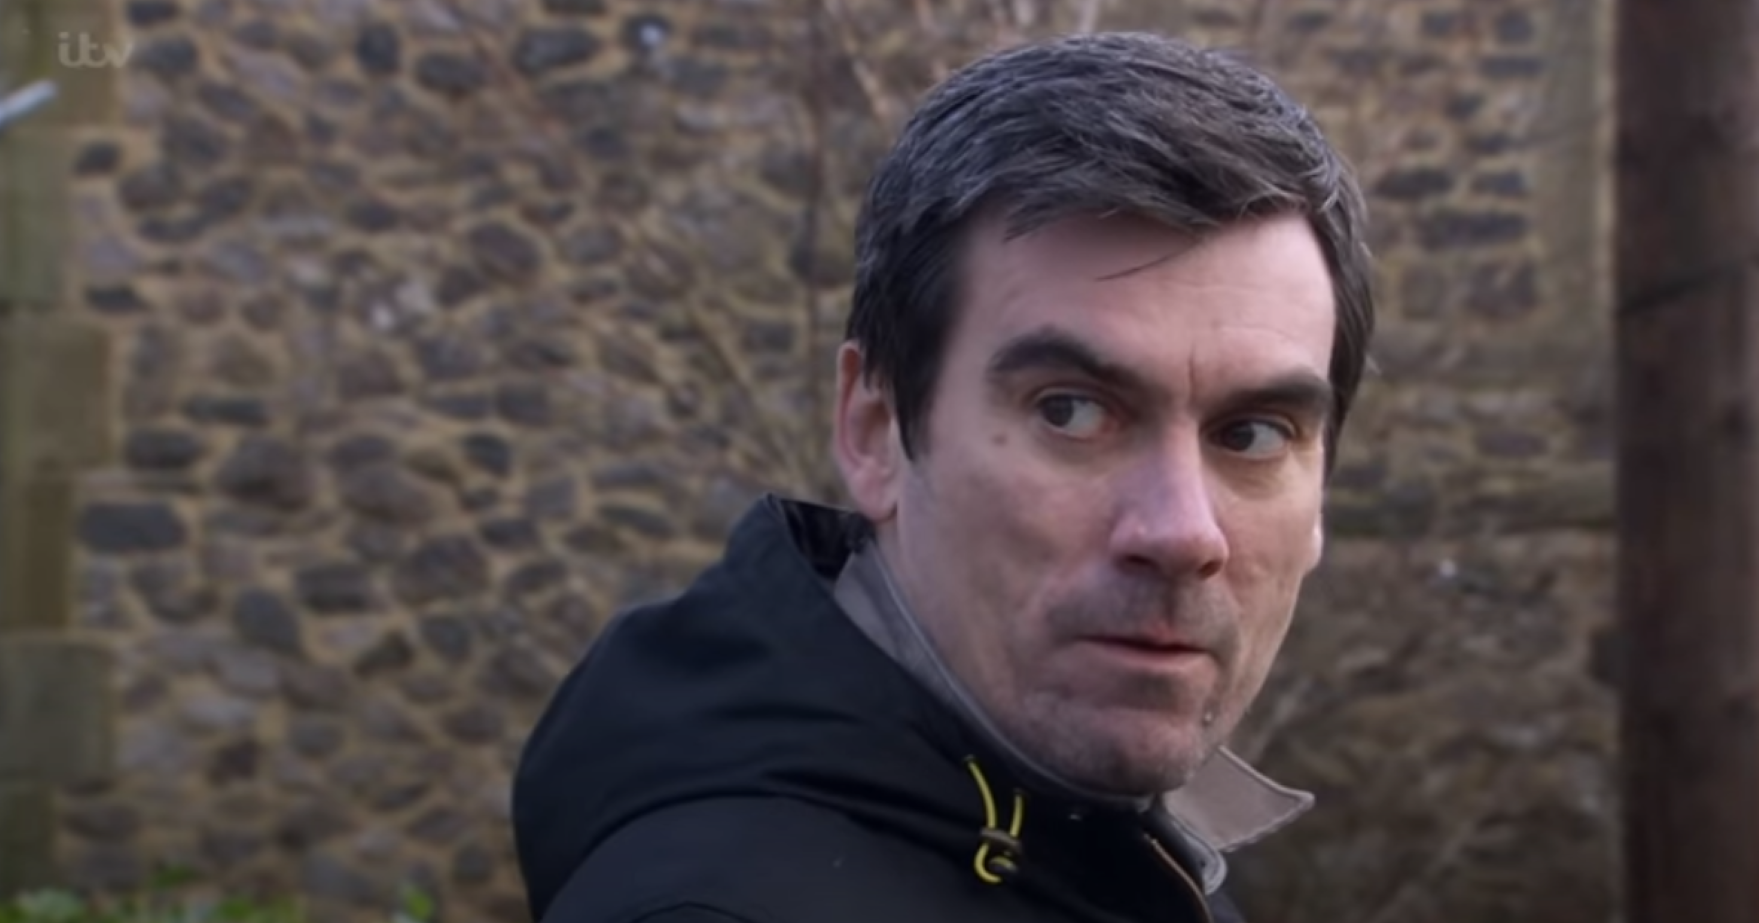 Emmerdale's Jeff Hordley teases death plot as Cain and Malone go against each other